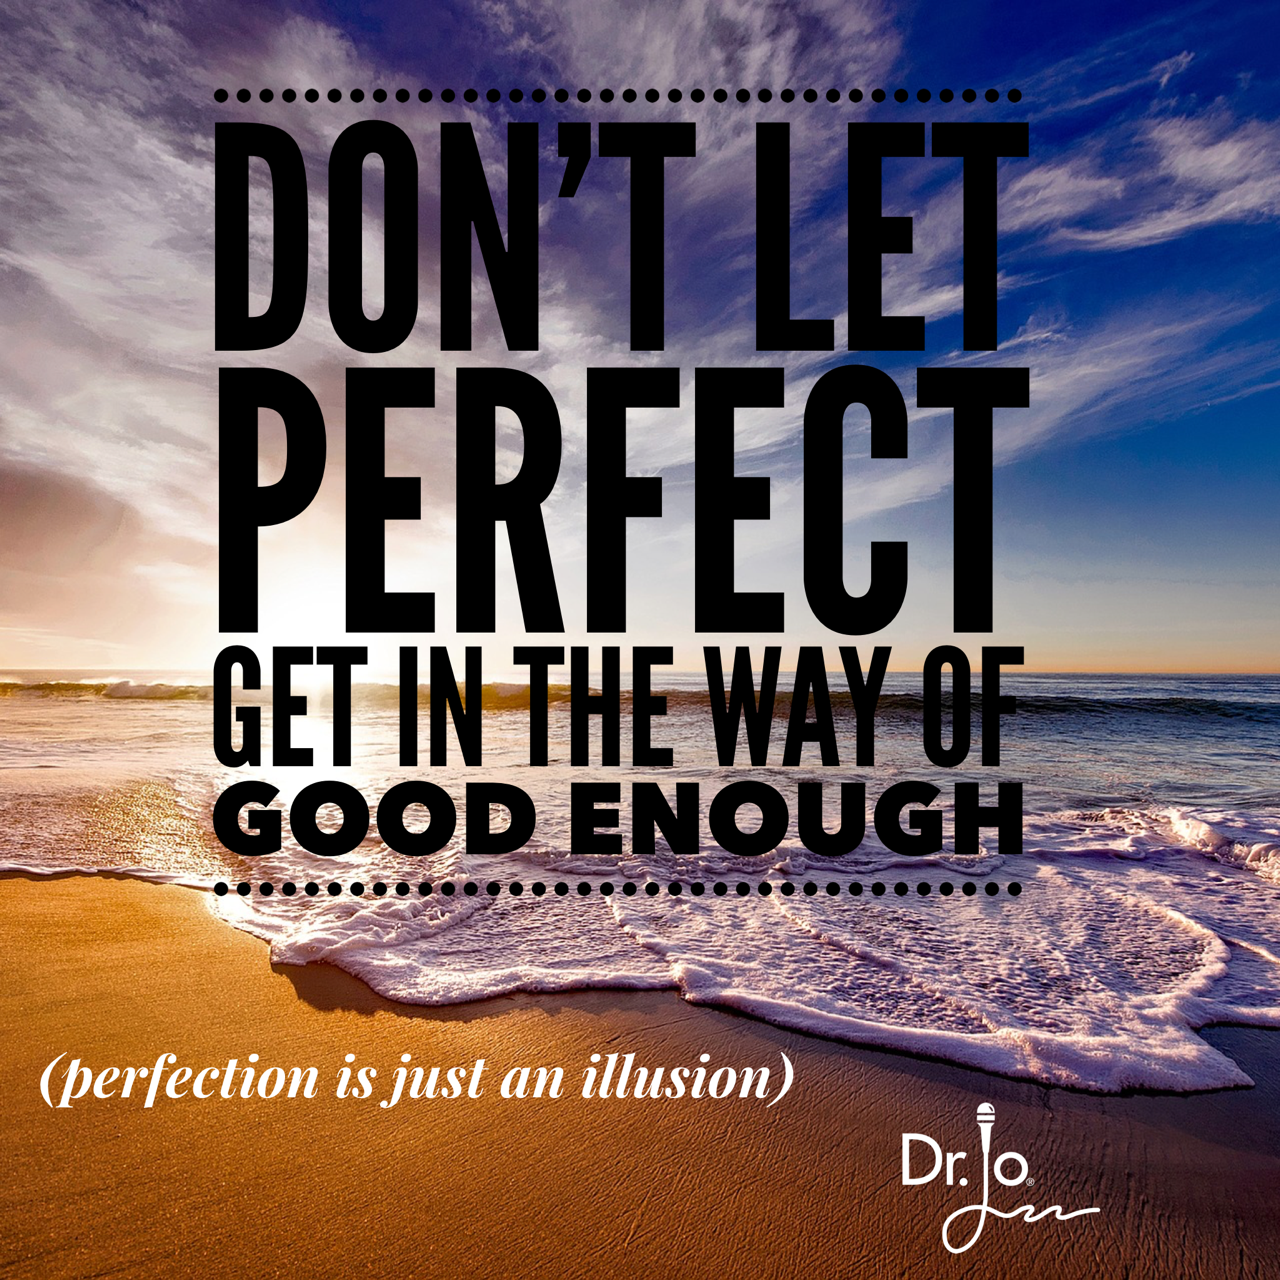 """Stop aiming for """"perfect"""". Good enough is...good enough. http://www.drjo.com/2016/05/eat/perfectly-imperfect/"""